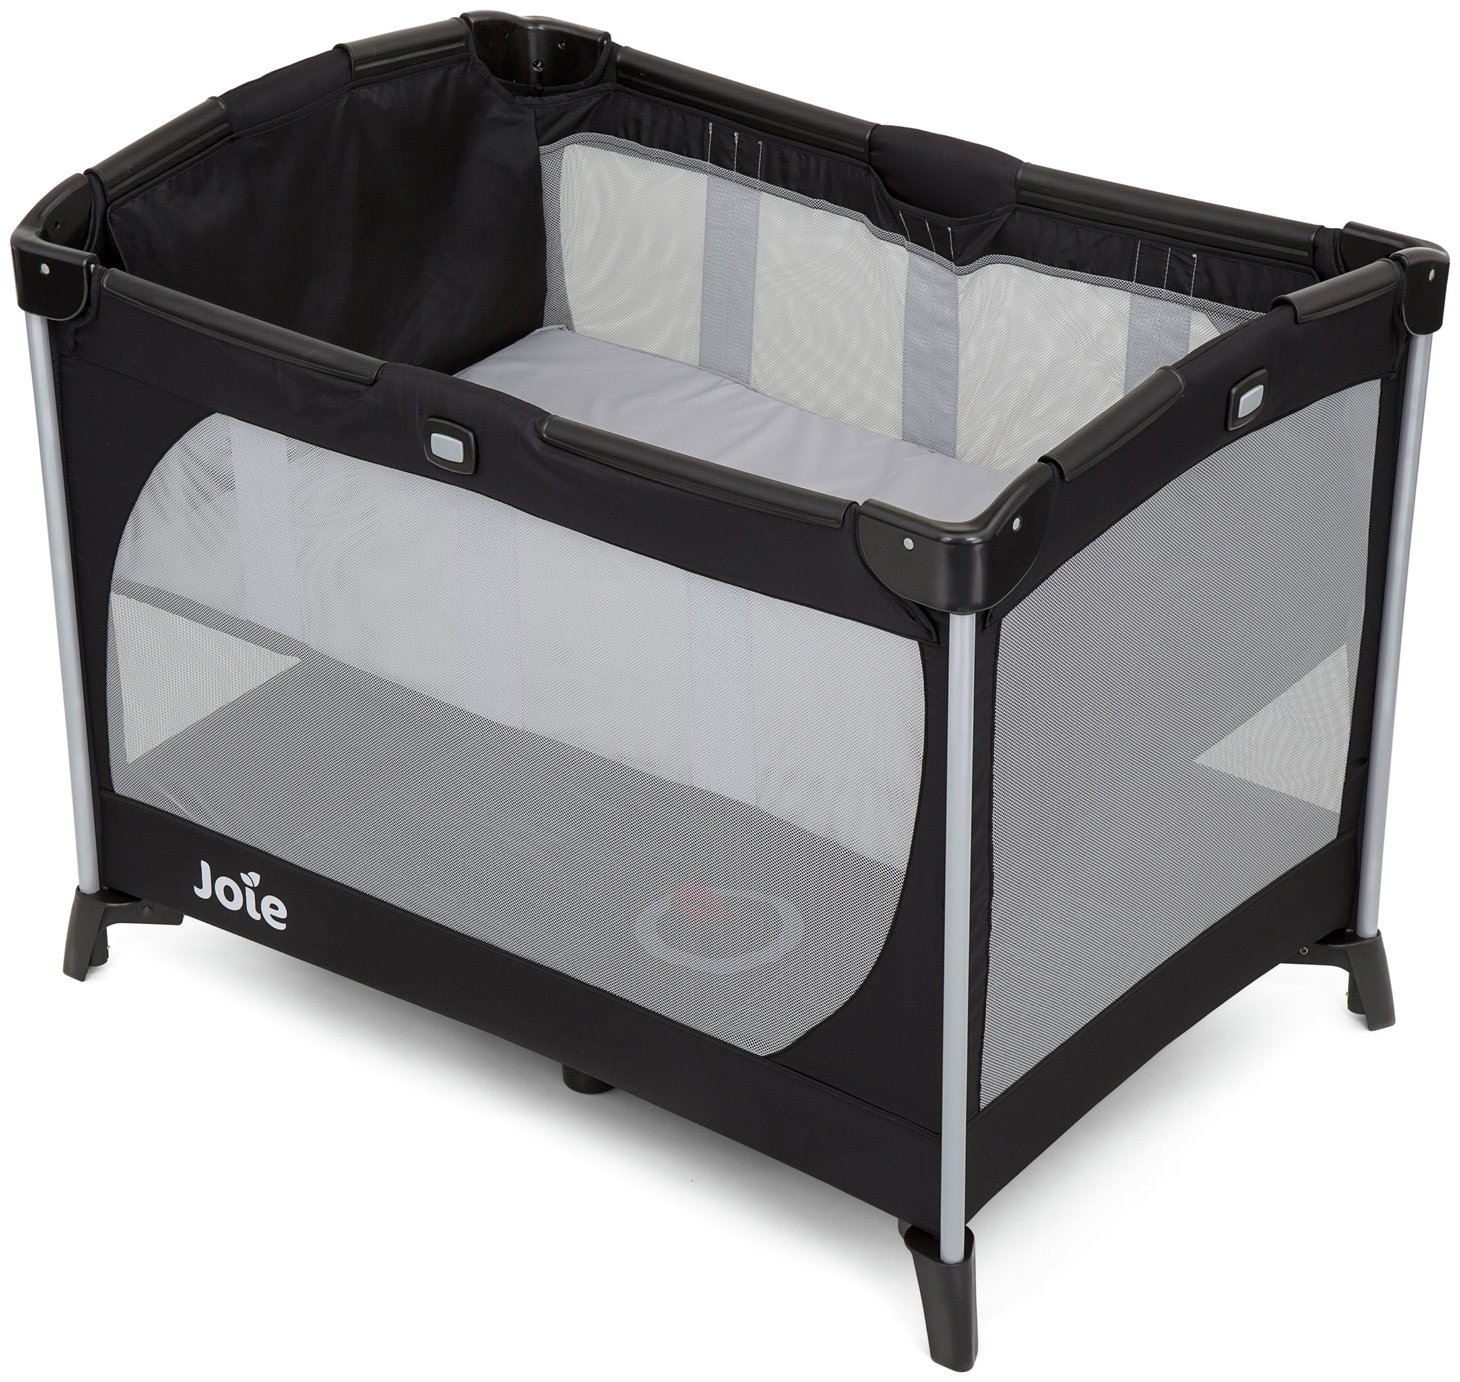 Image of Joie Allura - Travel - Cot with Bassinet